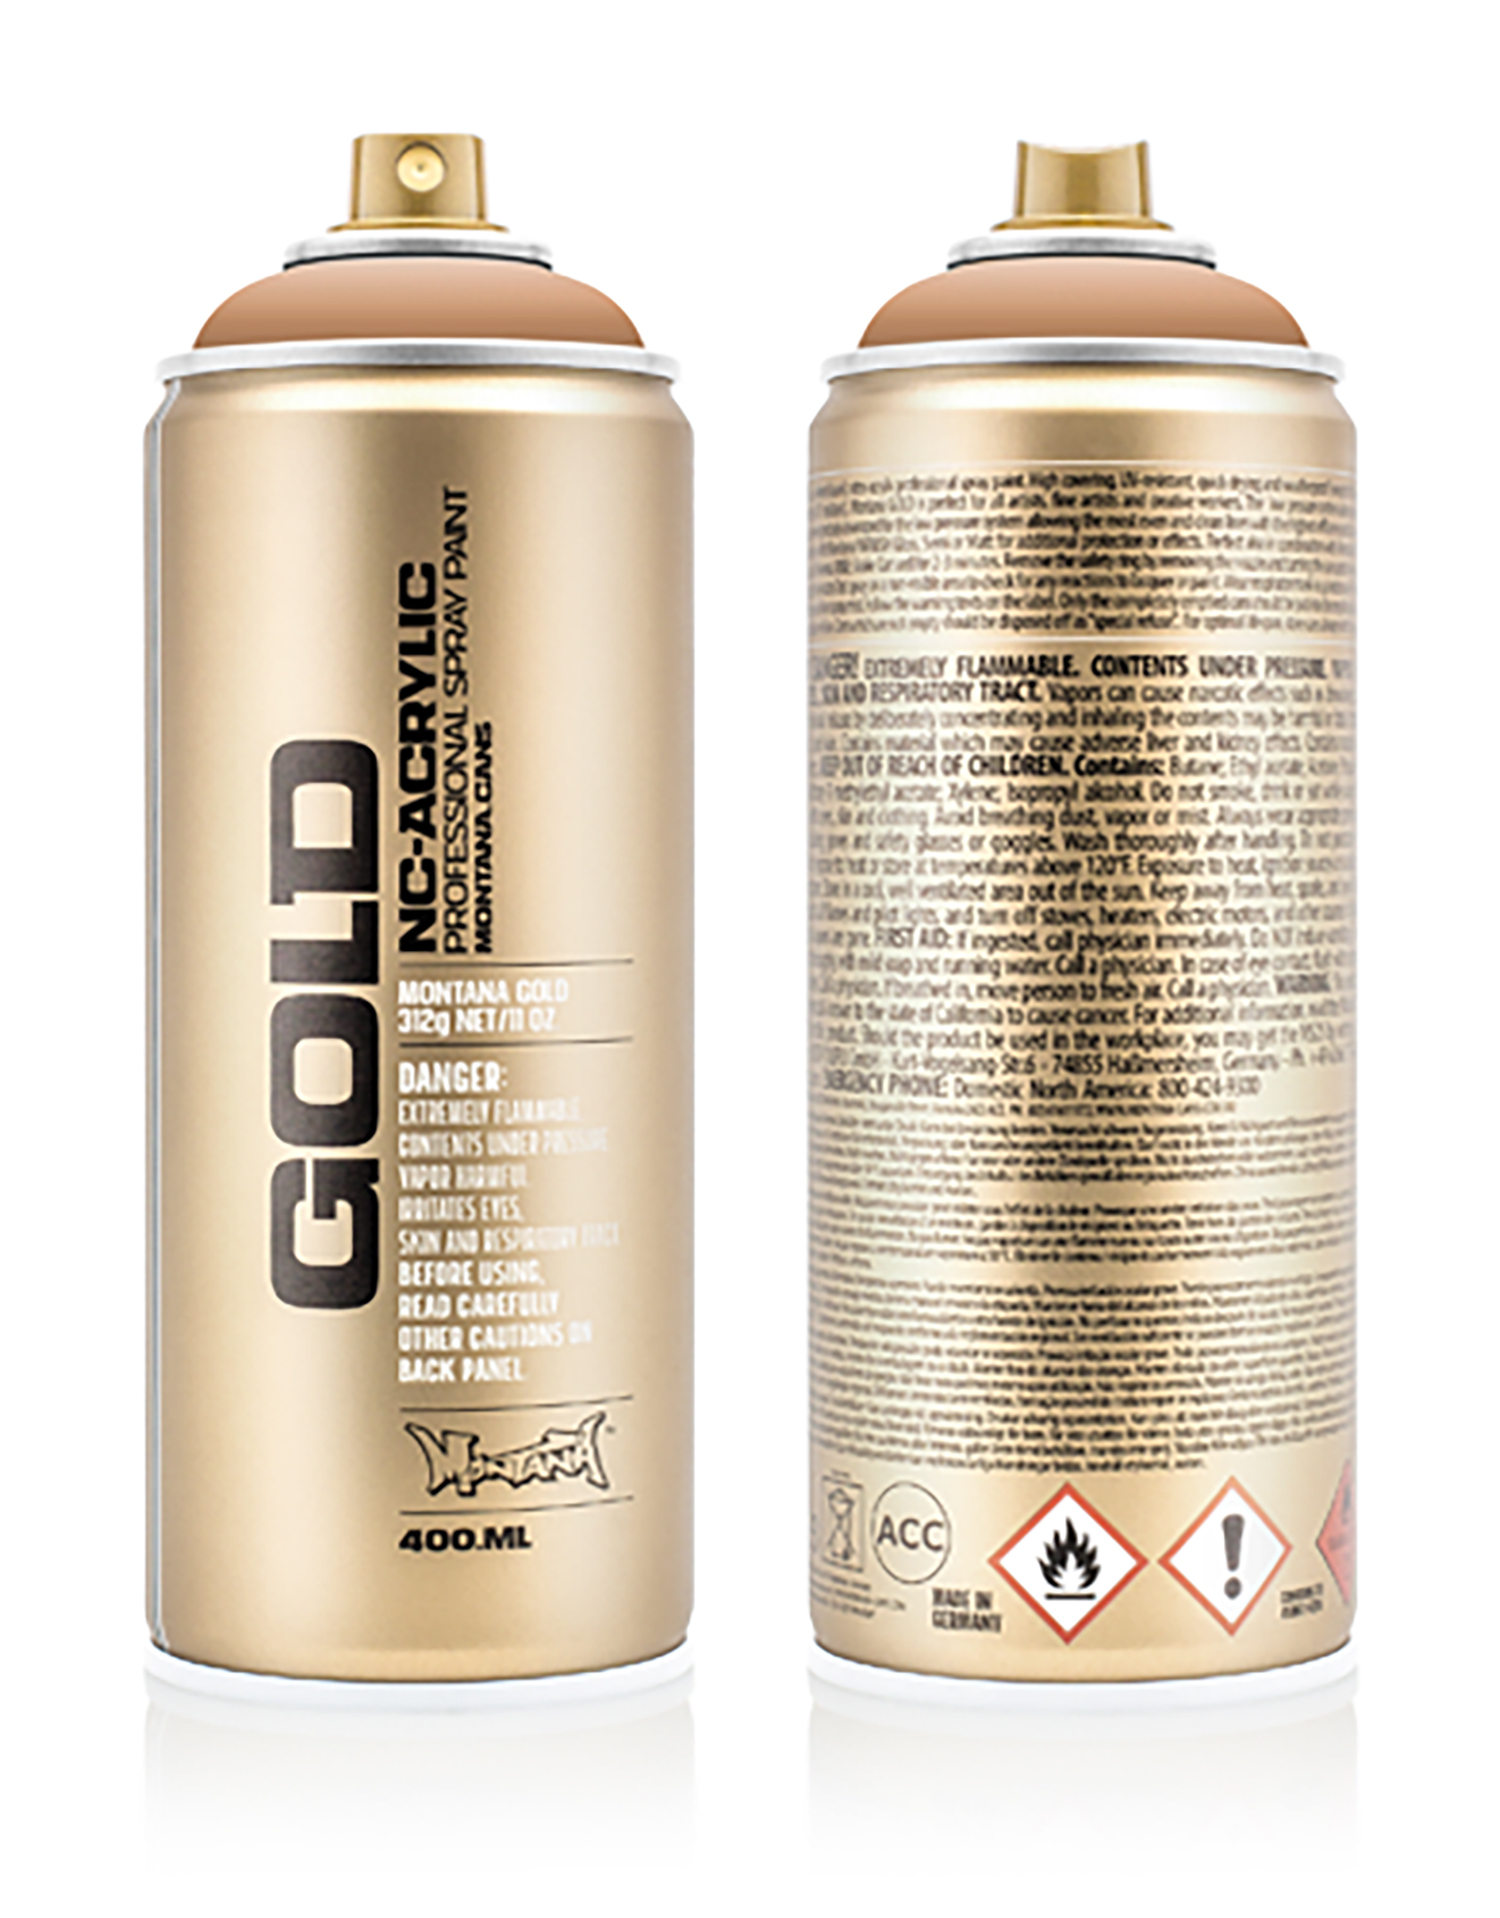 MONTANA-GOLD-SPRAY-400ML-G-1440